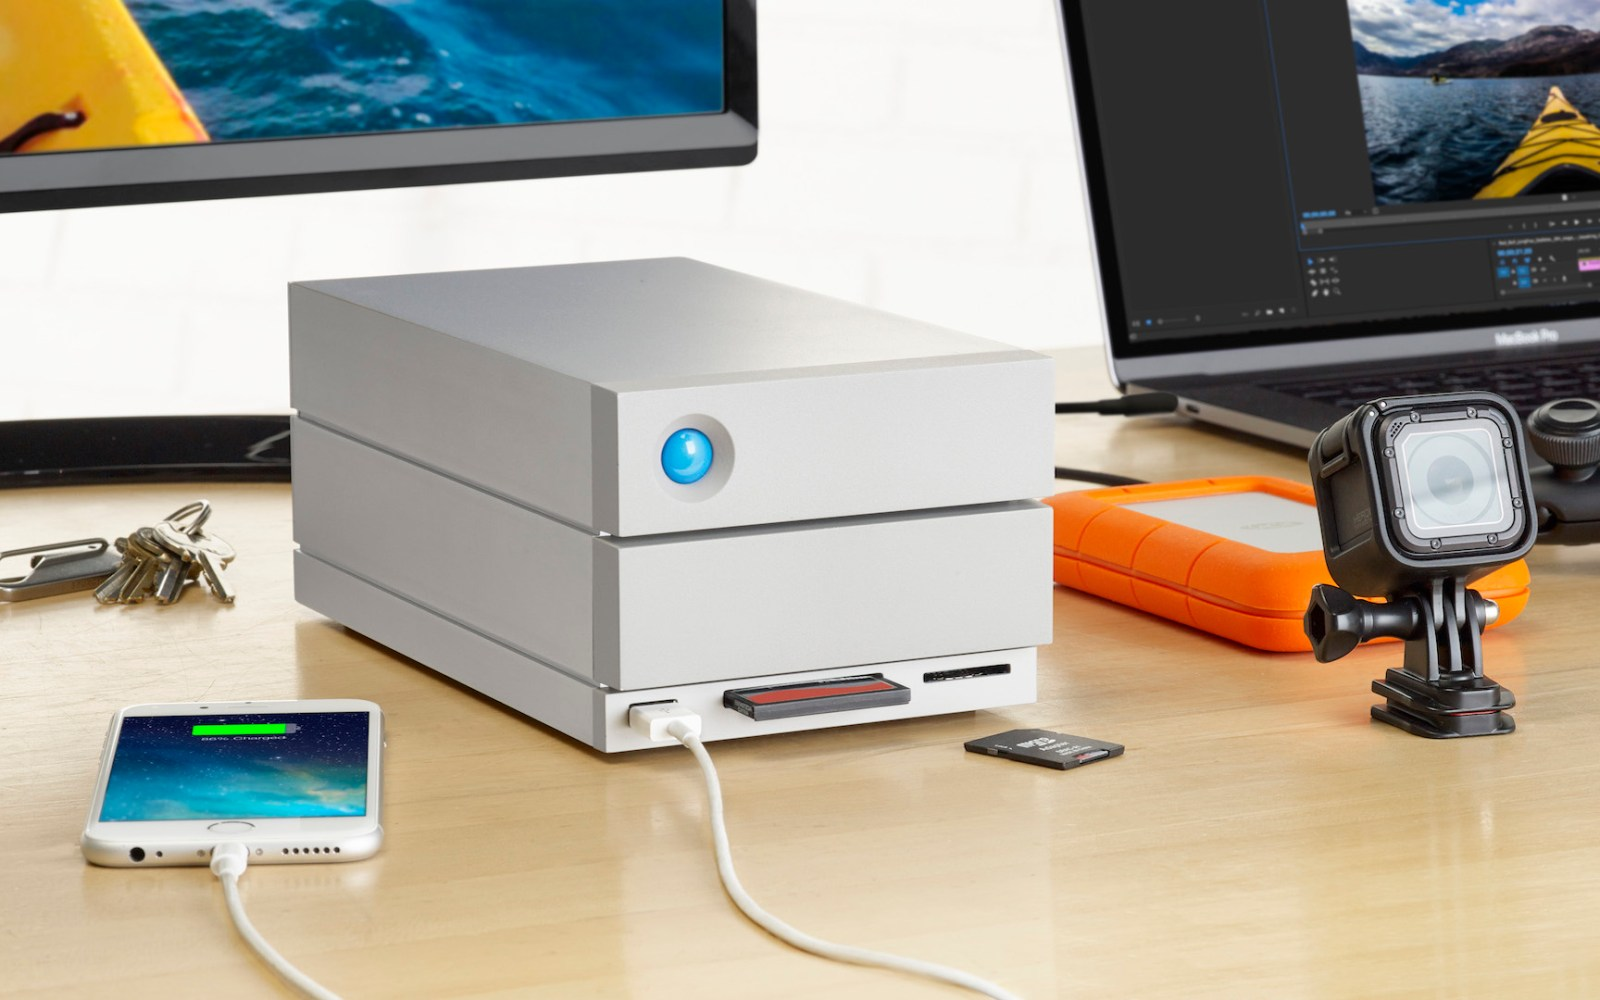 LaCie launches new '2big' Thunderbolt 3-enabled dock